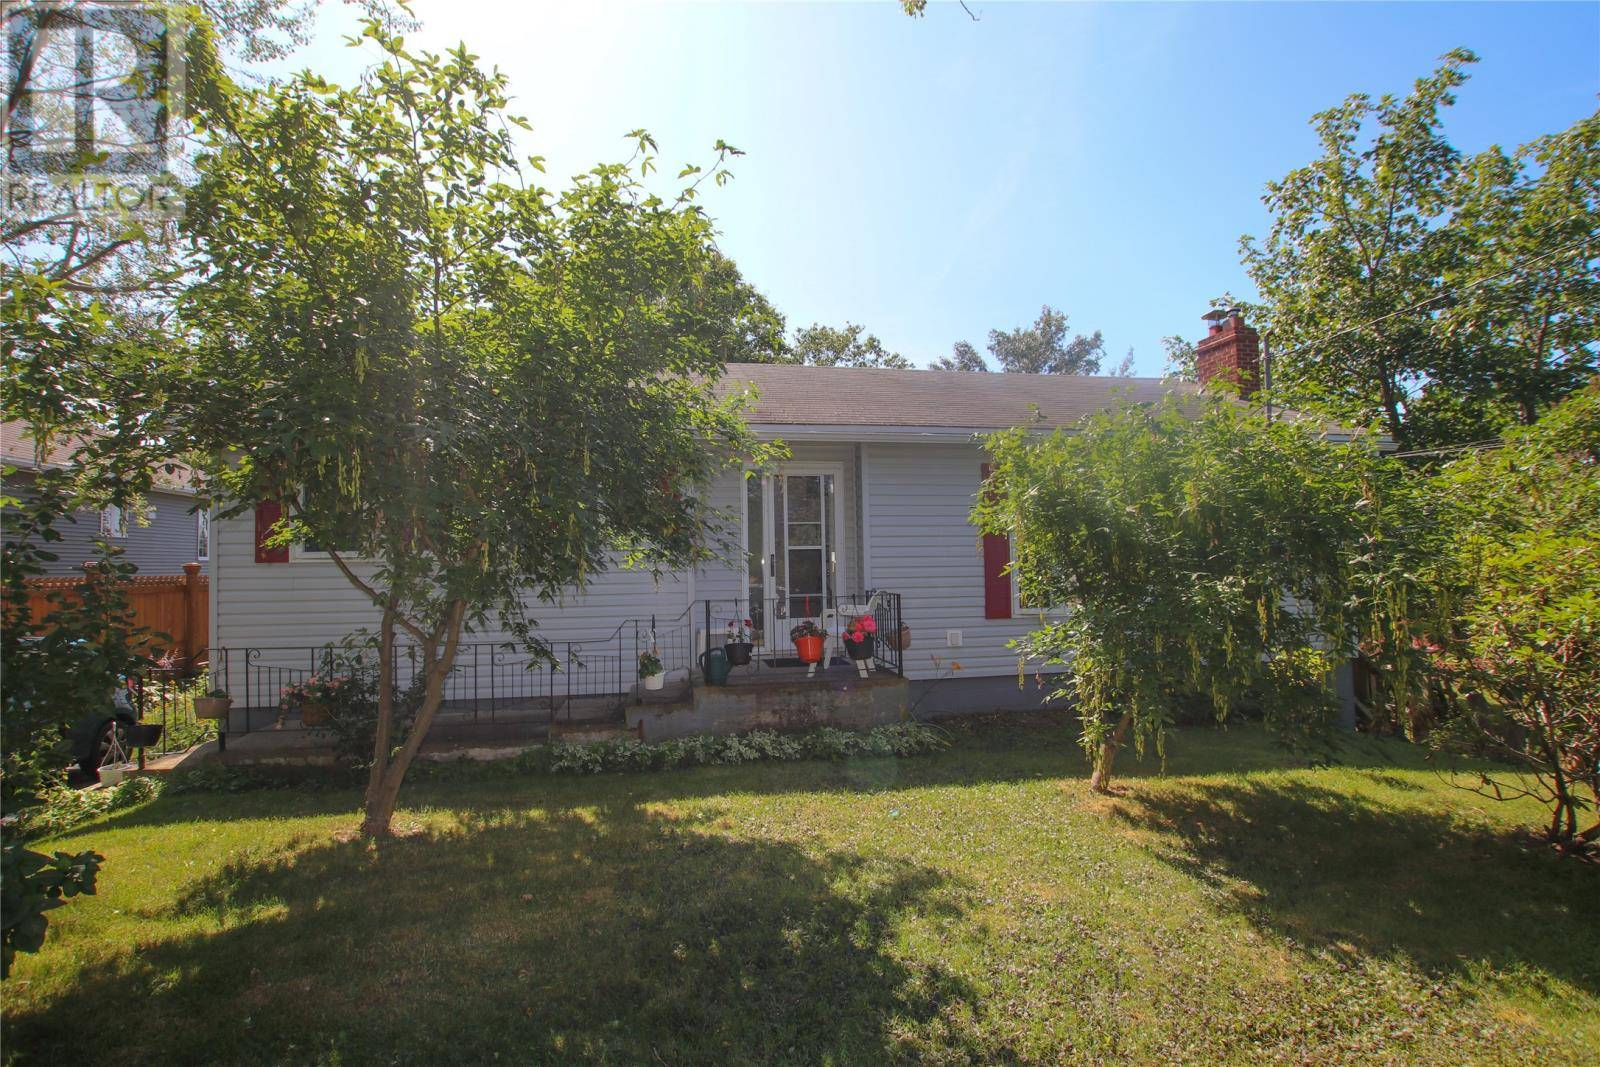 House for sale at 12 Tobins Rd Conception Bay South Newfoundland - MLS: 1200620